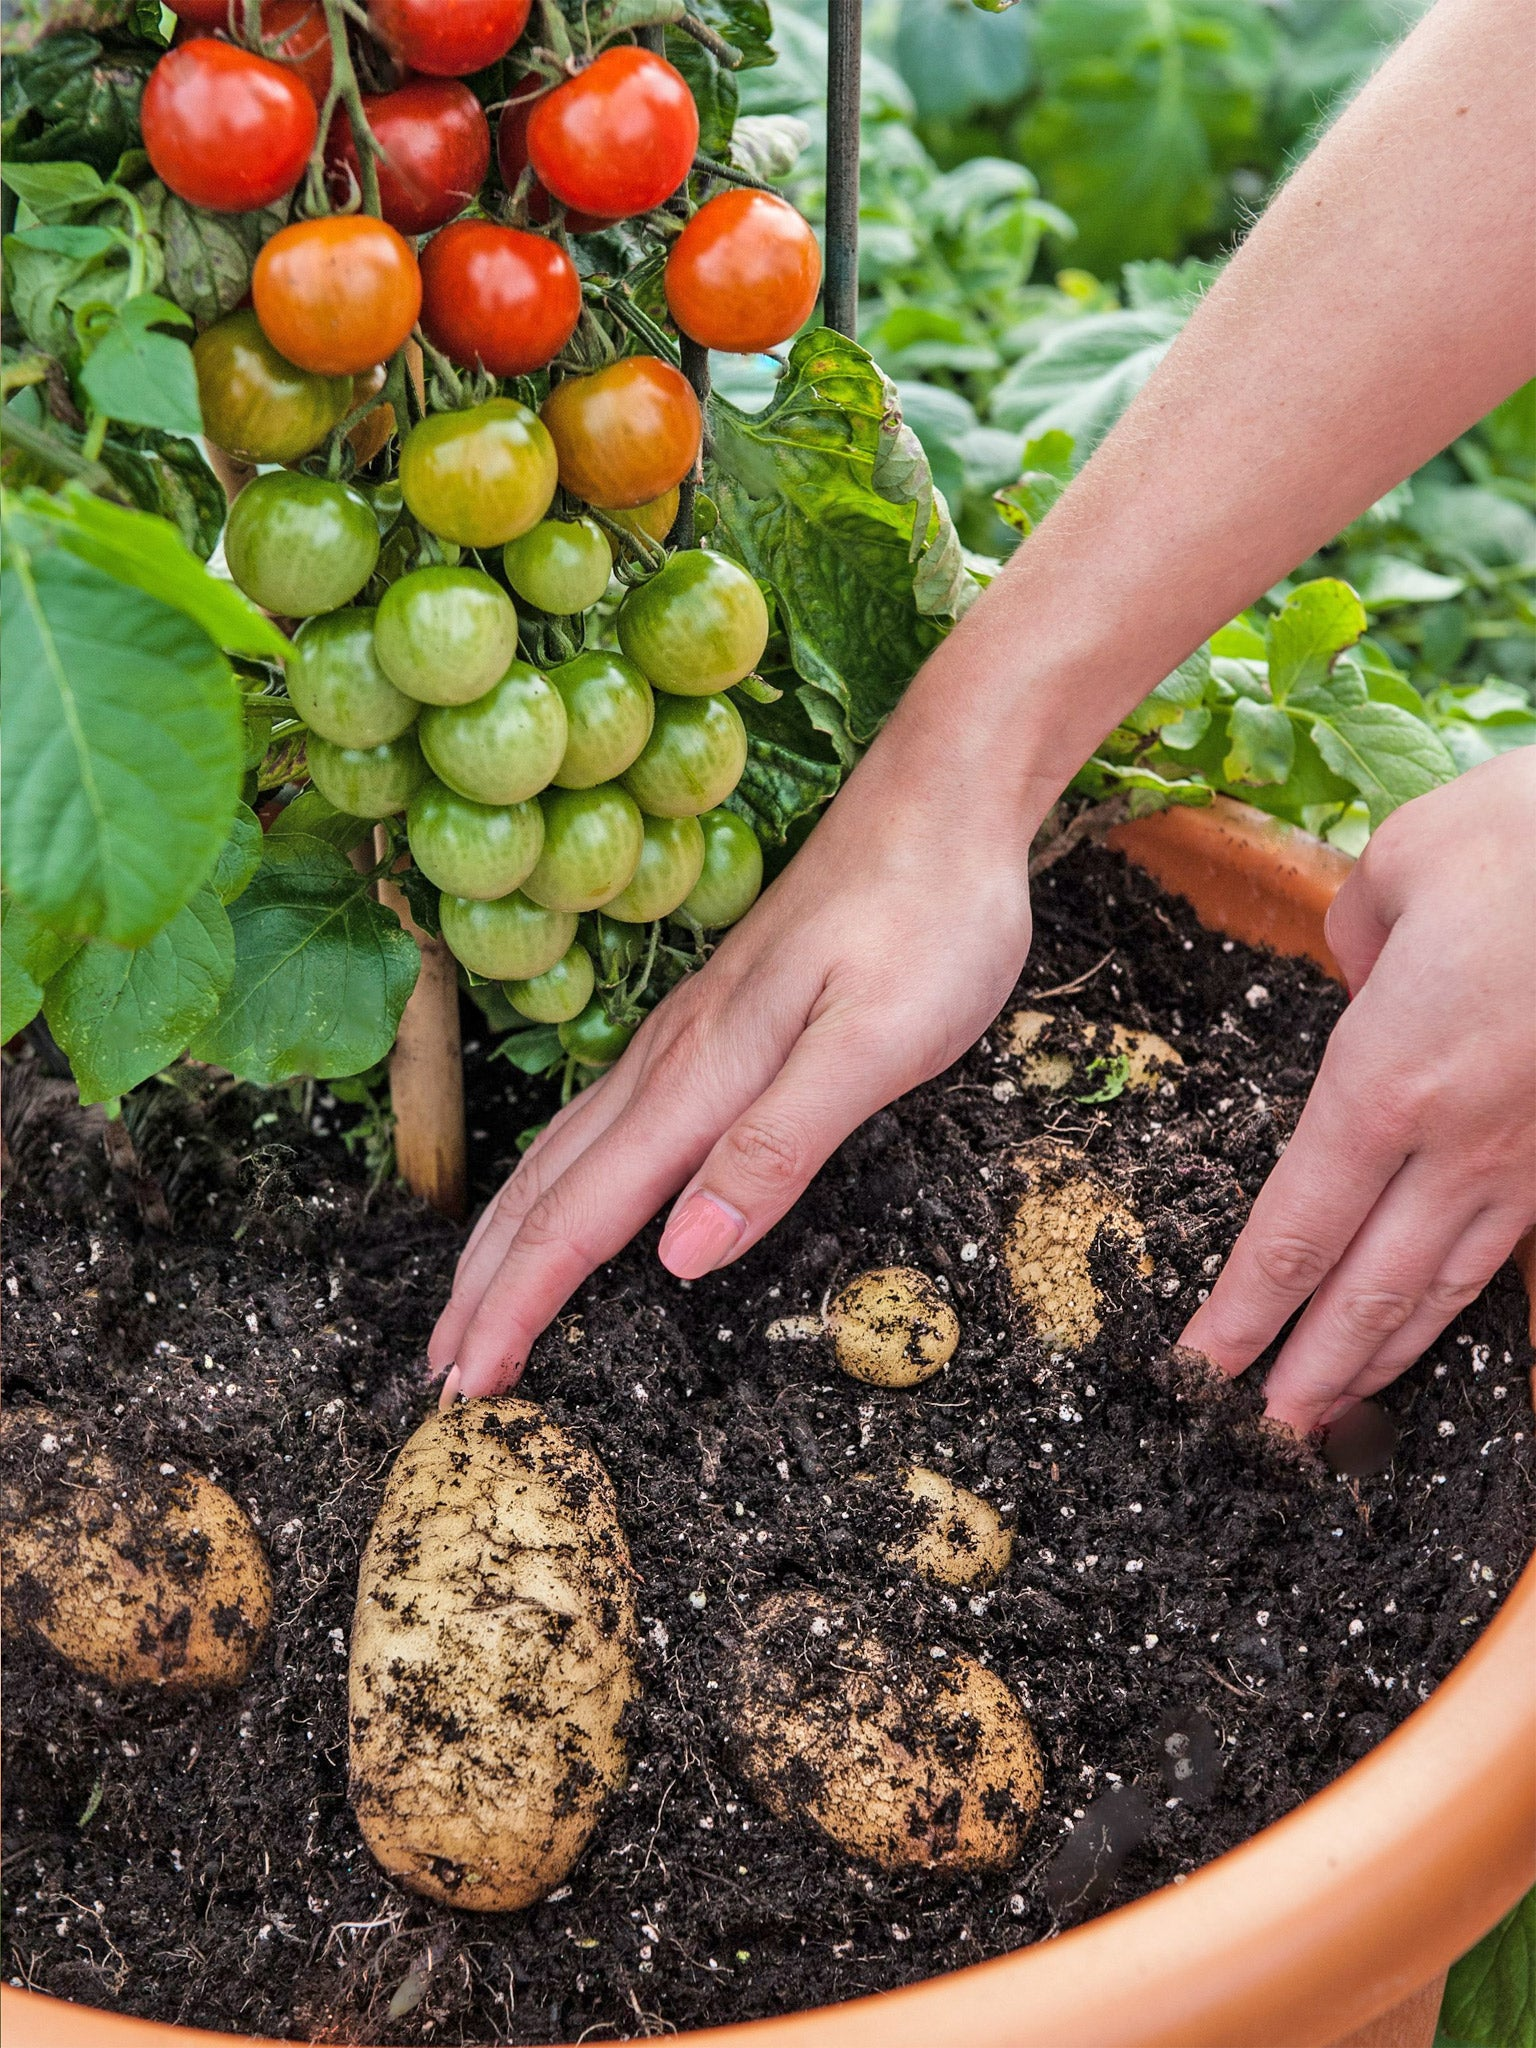 The Tomtato Plant Which Produces Both Potatoes And Tomatoes Launched In Uk The Independent